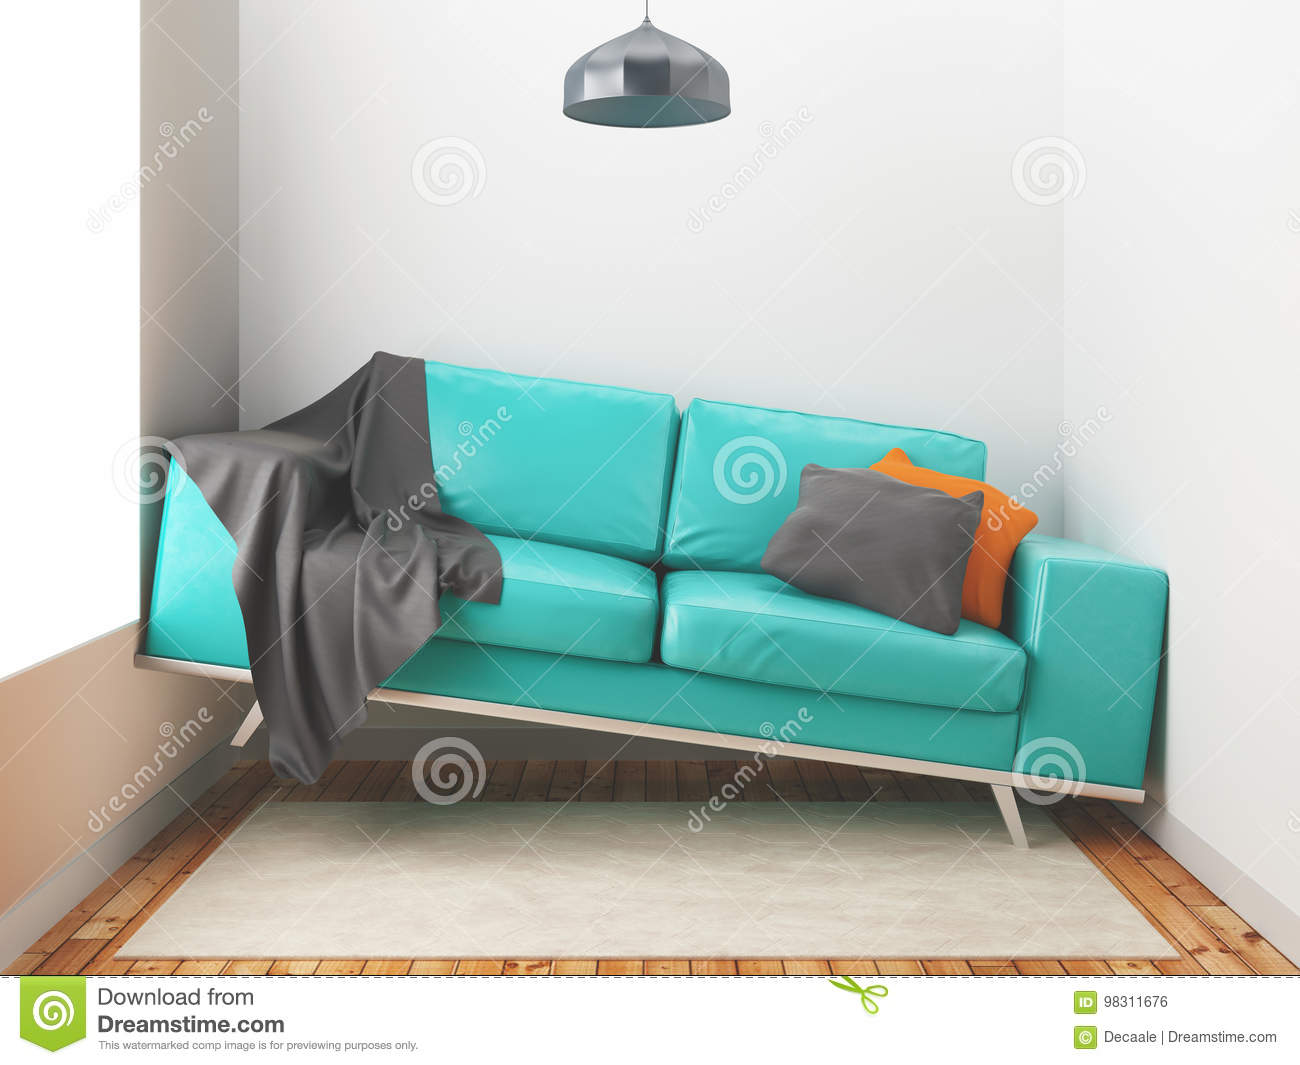 Awry Sofa Big Sofa In A Small Room 3d Render Illustration Stock Illustration Illustration Of Background Pillow 98311676